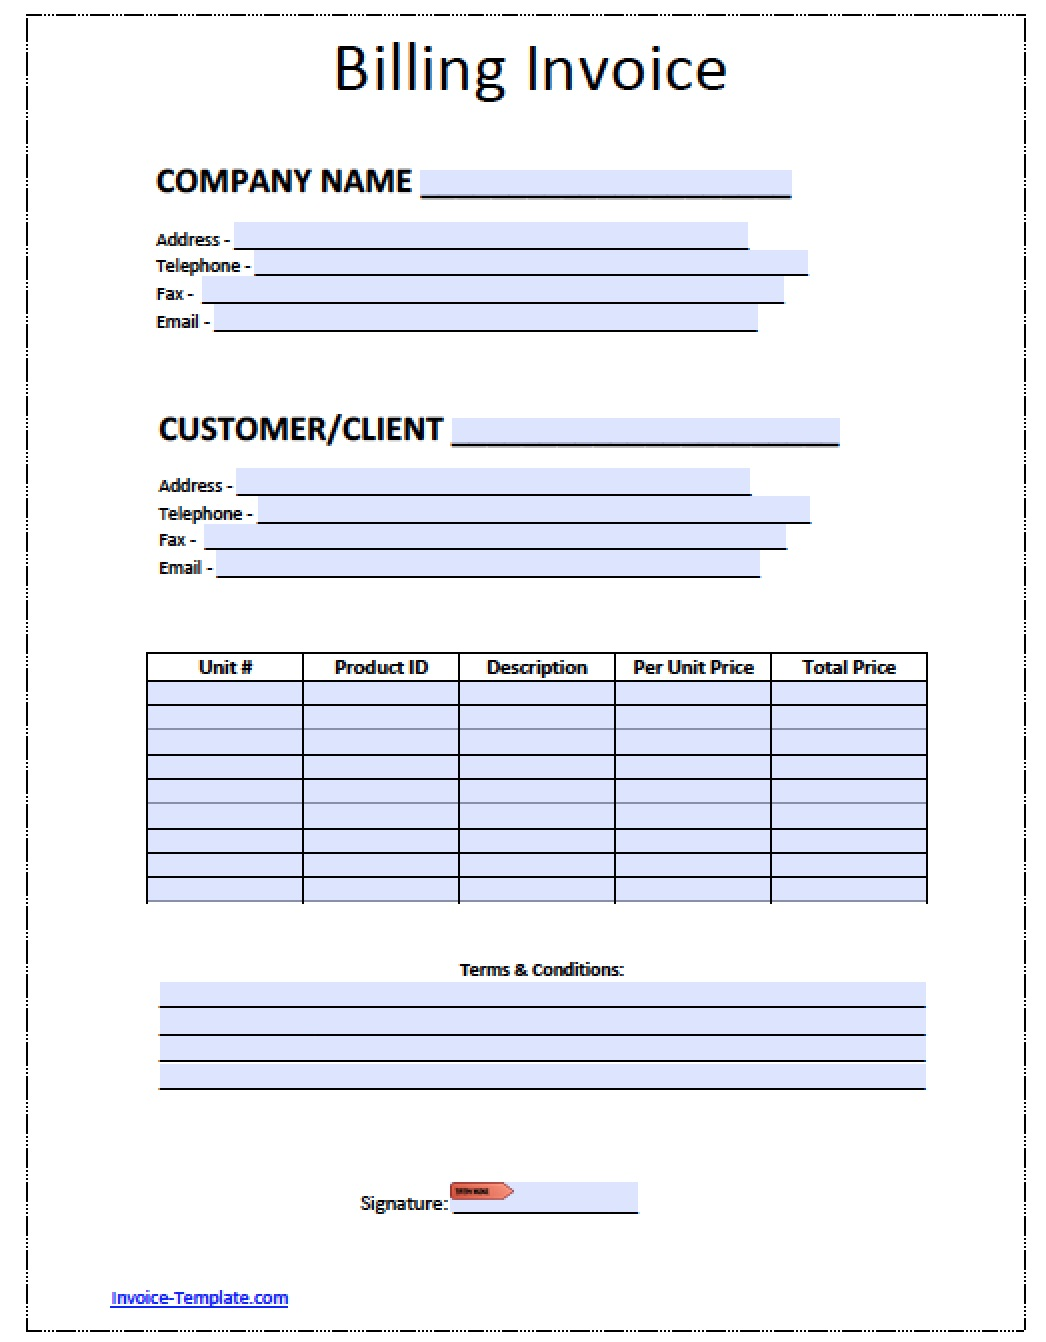 Pxworkoutfreeus  Marvelous Billing Invoice Invoices Faq U Cloudflare Support Billing  With Engaging Free Billing Invoice Template  Excel  Pdf  Word Doc  Billing With Awesome Selling A Car Receipt Template Also Cash Receipt Slip In Addition Duplicate Receipt Book Personalised And Rent Receipts Free As Well As Mate Receipt Additionally Sample Cash Receipts Journal From Happytomco With Pxworkoutfreeus  Engaging Billing Invoice Invoices Faq U Cloudflare Support Billing  With Awesome Free Billing Invoice Template  Excel  Pdf  Word Doc  Billing And Marvelous Selling A Car Receipt Template Also Cash Receipt Slip In Addition Duplicate Receipt Book Personalised From Happytomco